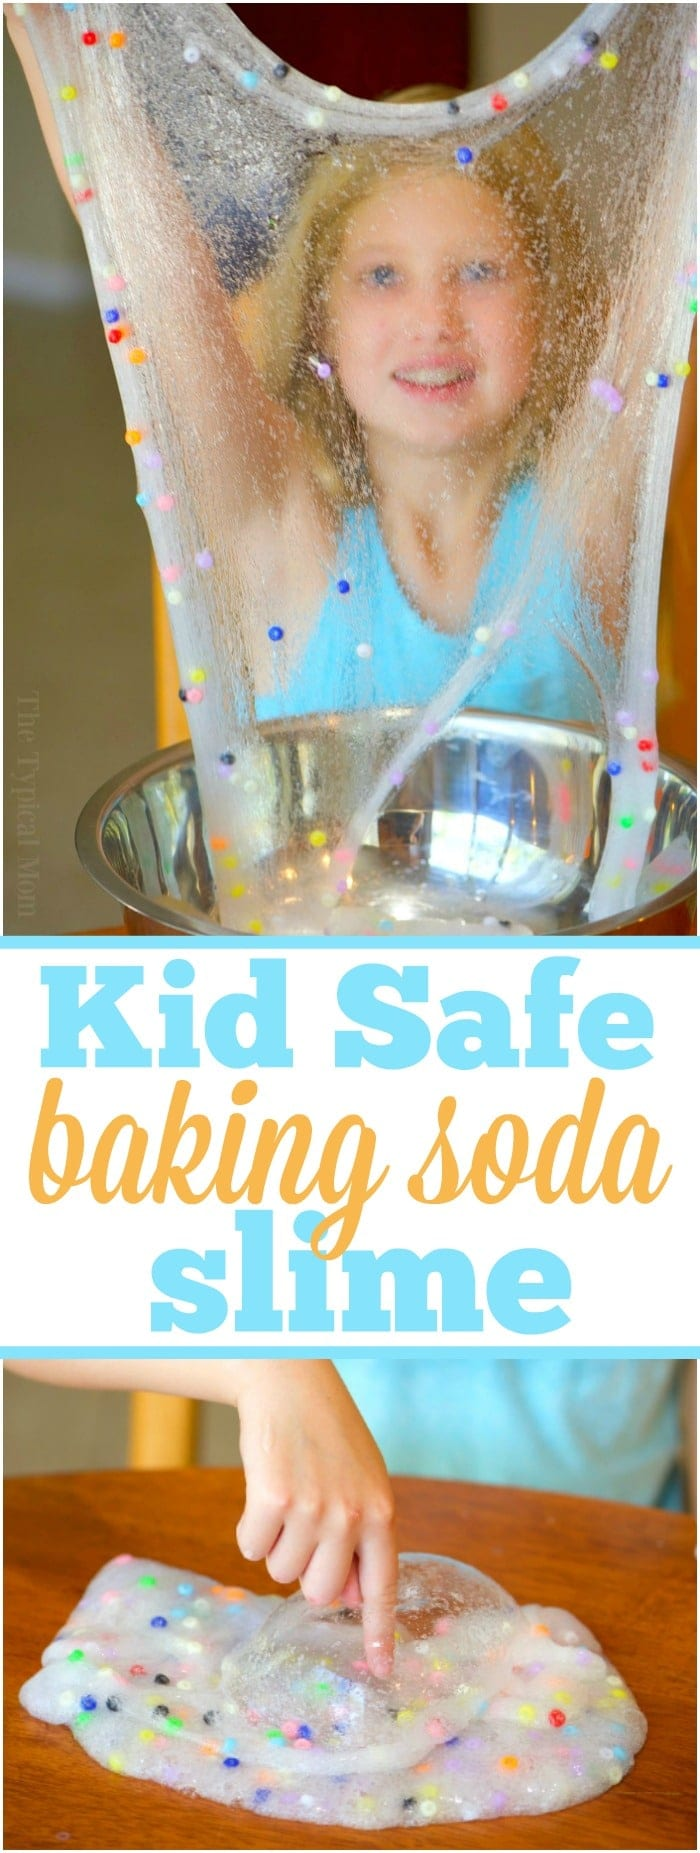 3 ingredient easy baking soda slime recipe without borax that's fun for your kids to make! Simple and safe to play with that you can make colorful too! Take a peek at how you can make this clear slime with contact solution and a few other ingredients. Our favorite slime recipe yet. #clear #bakingsoda #slime #recipe #easy #glue #boraxfree #noborax #withoutborax #safe